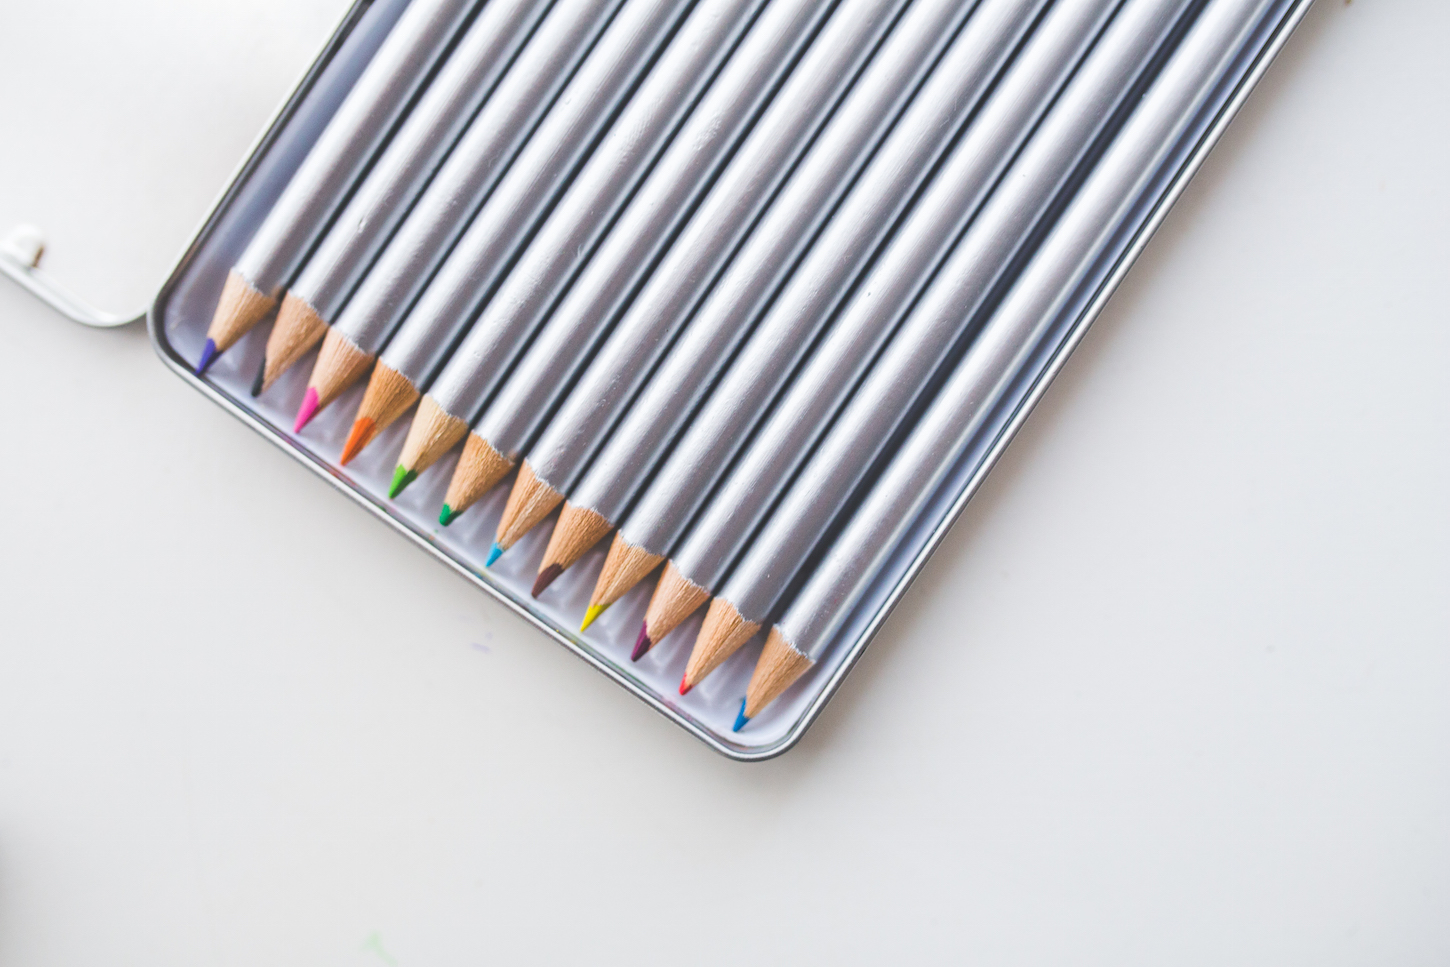 pencils-crayons-crayon-colored-pencils copia